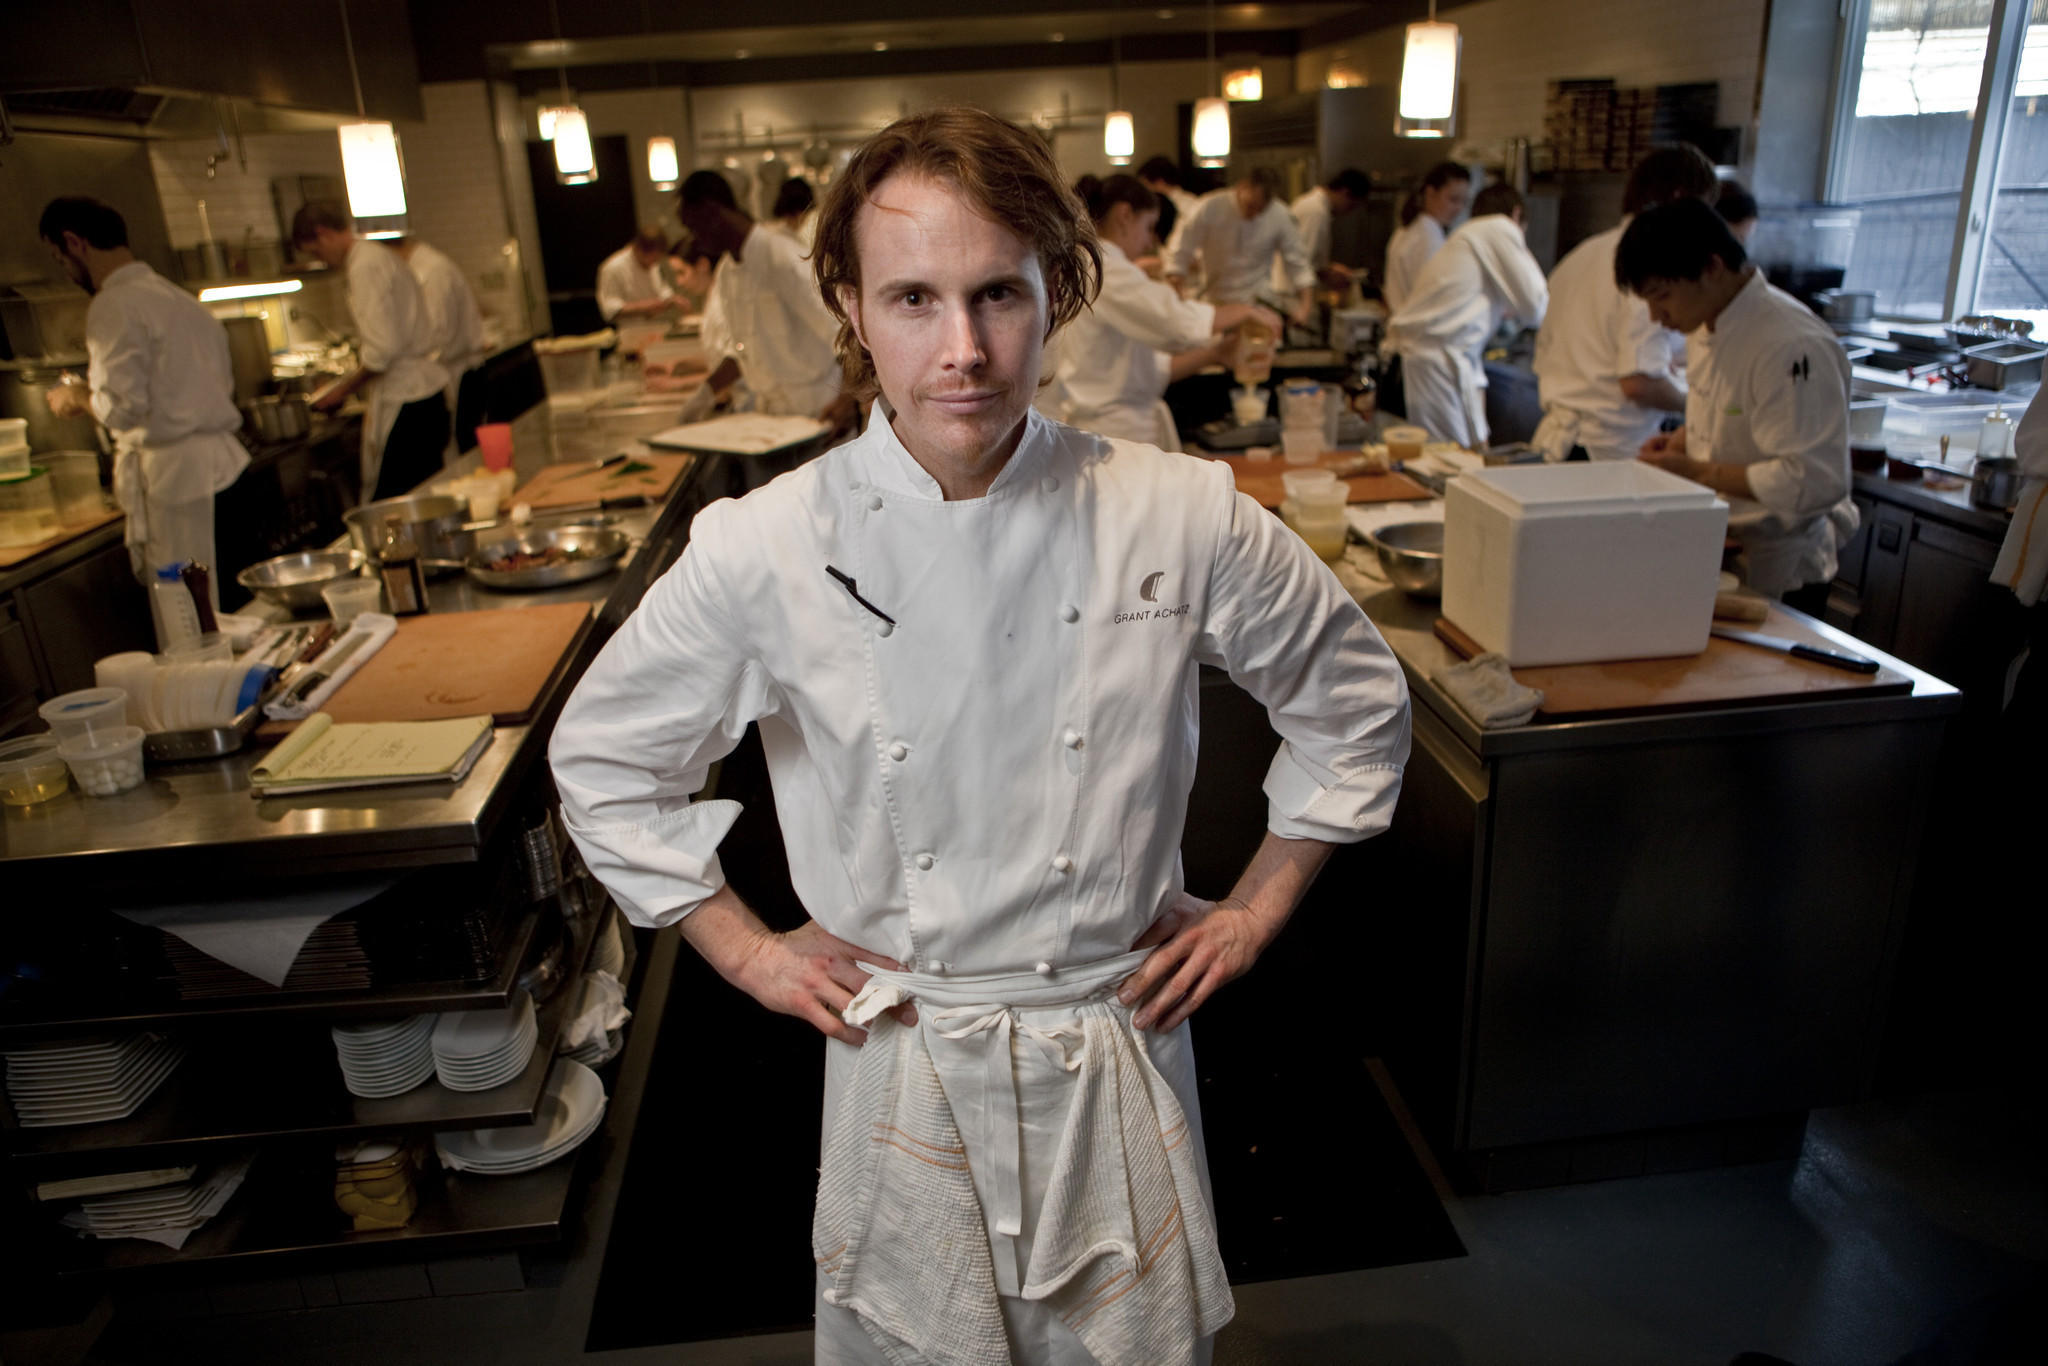 Chef Grant Achatz works in the kitchen of his restaurant Alinea.